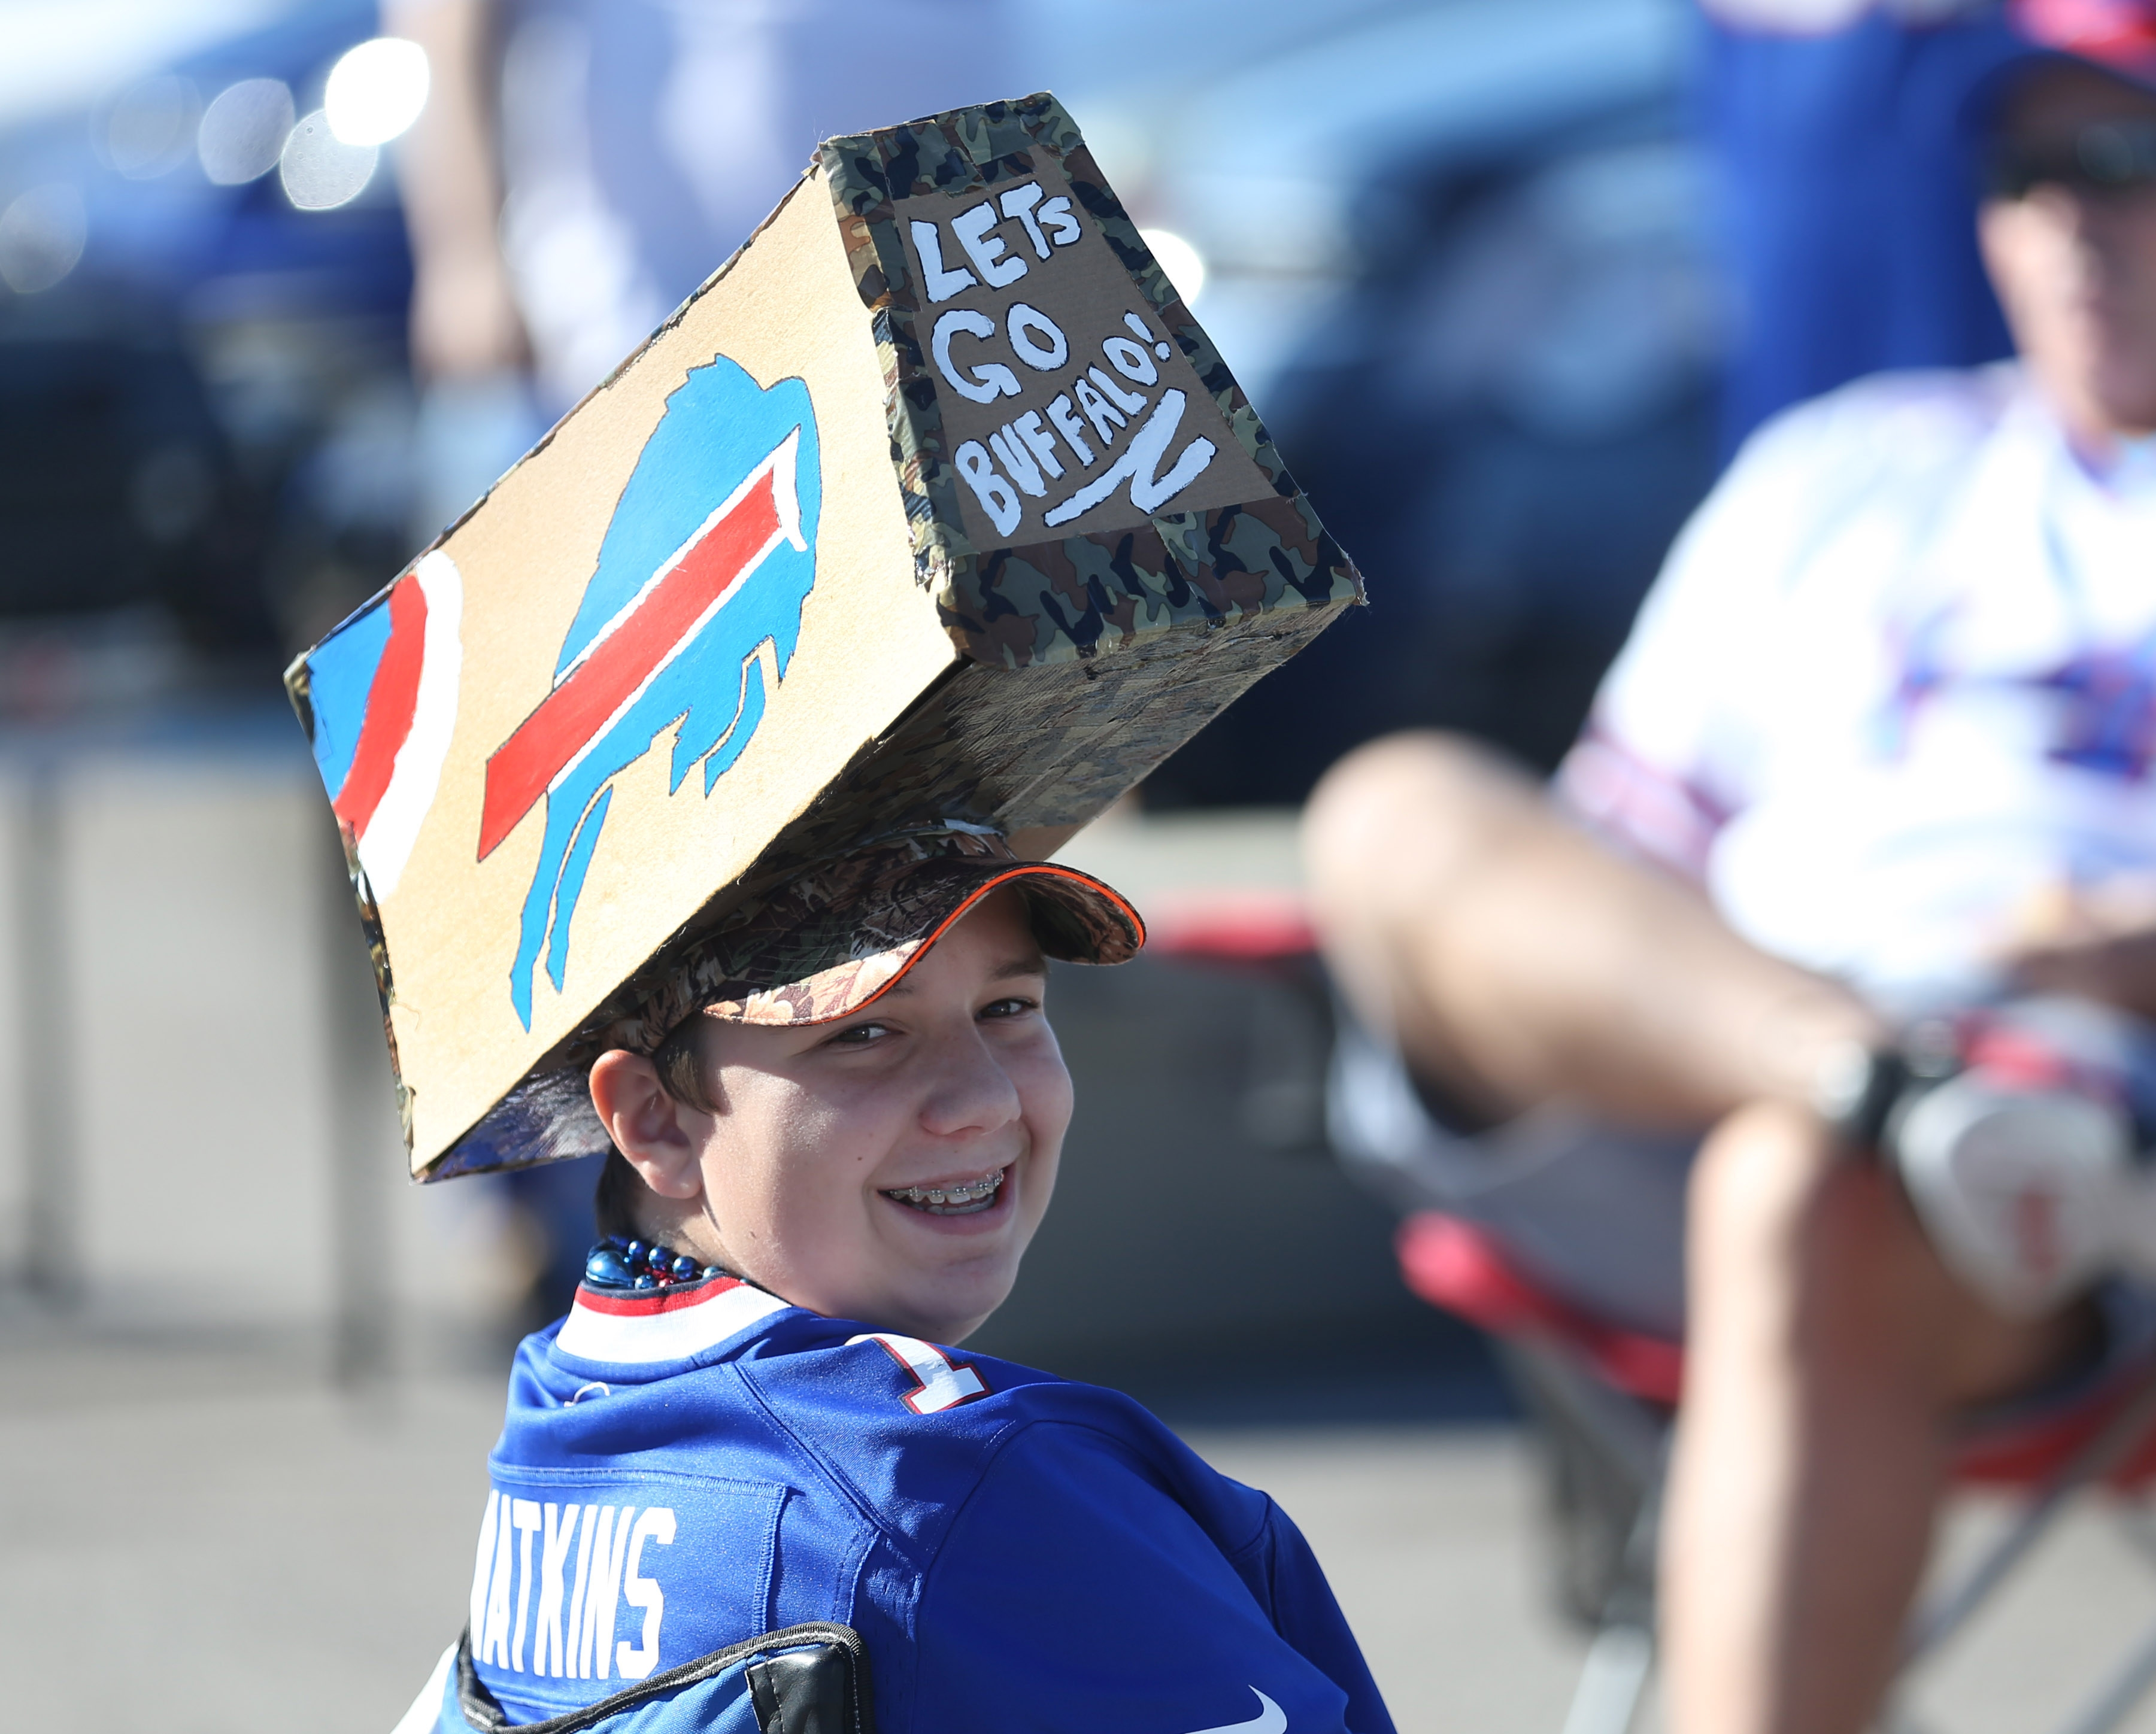 Tailgating before a Buffalo Bills game is an integral part of game-day fun around New Era Field, in Orchard Park. Tailgaters bring an array of food and drink and visit with their neighbors prior to game time, Sunday, Sept. 25, 2016. Jacob Lawson, 14, of Batavia, makes a funky hat for his first Bills game. (Sharon Cantillon/Buffalo News)